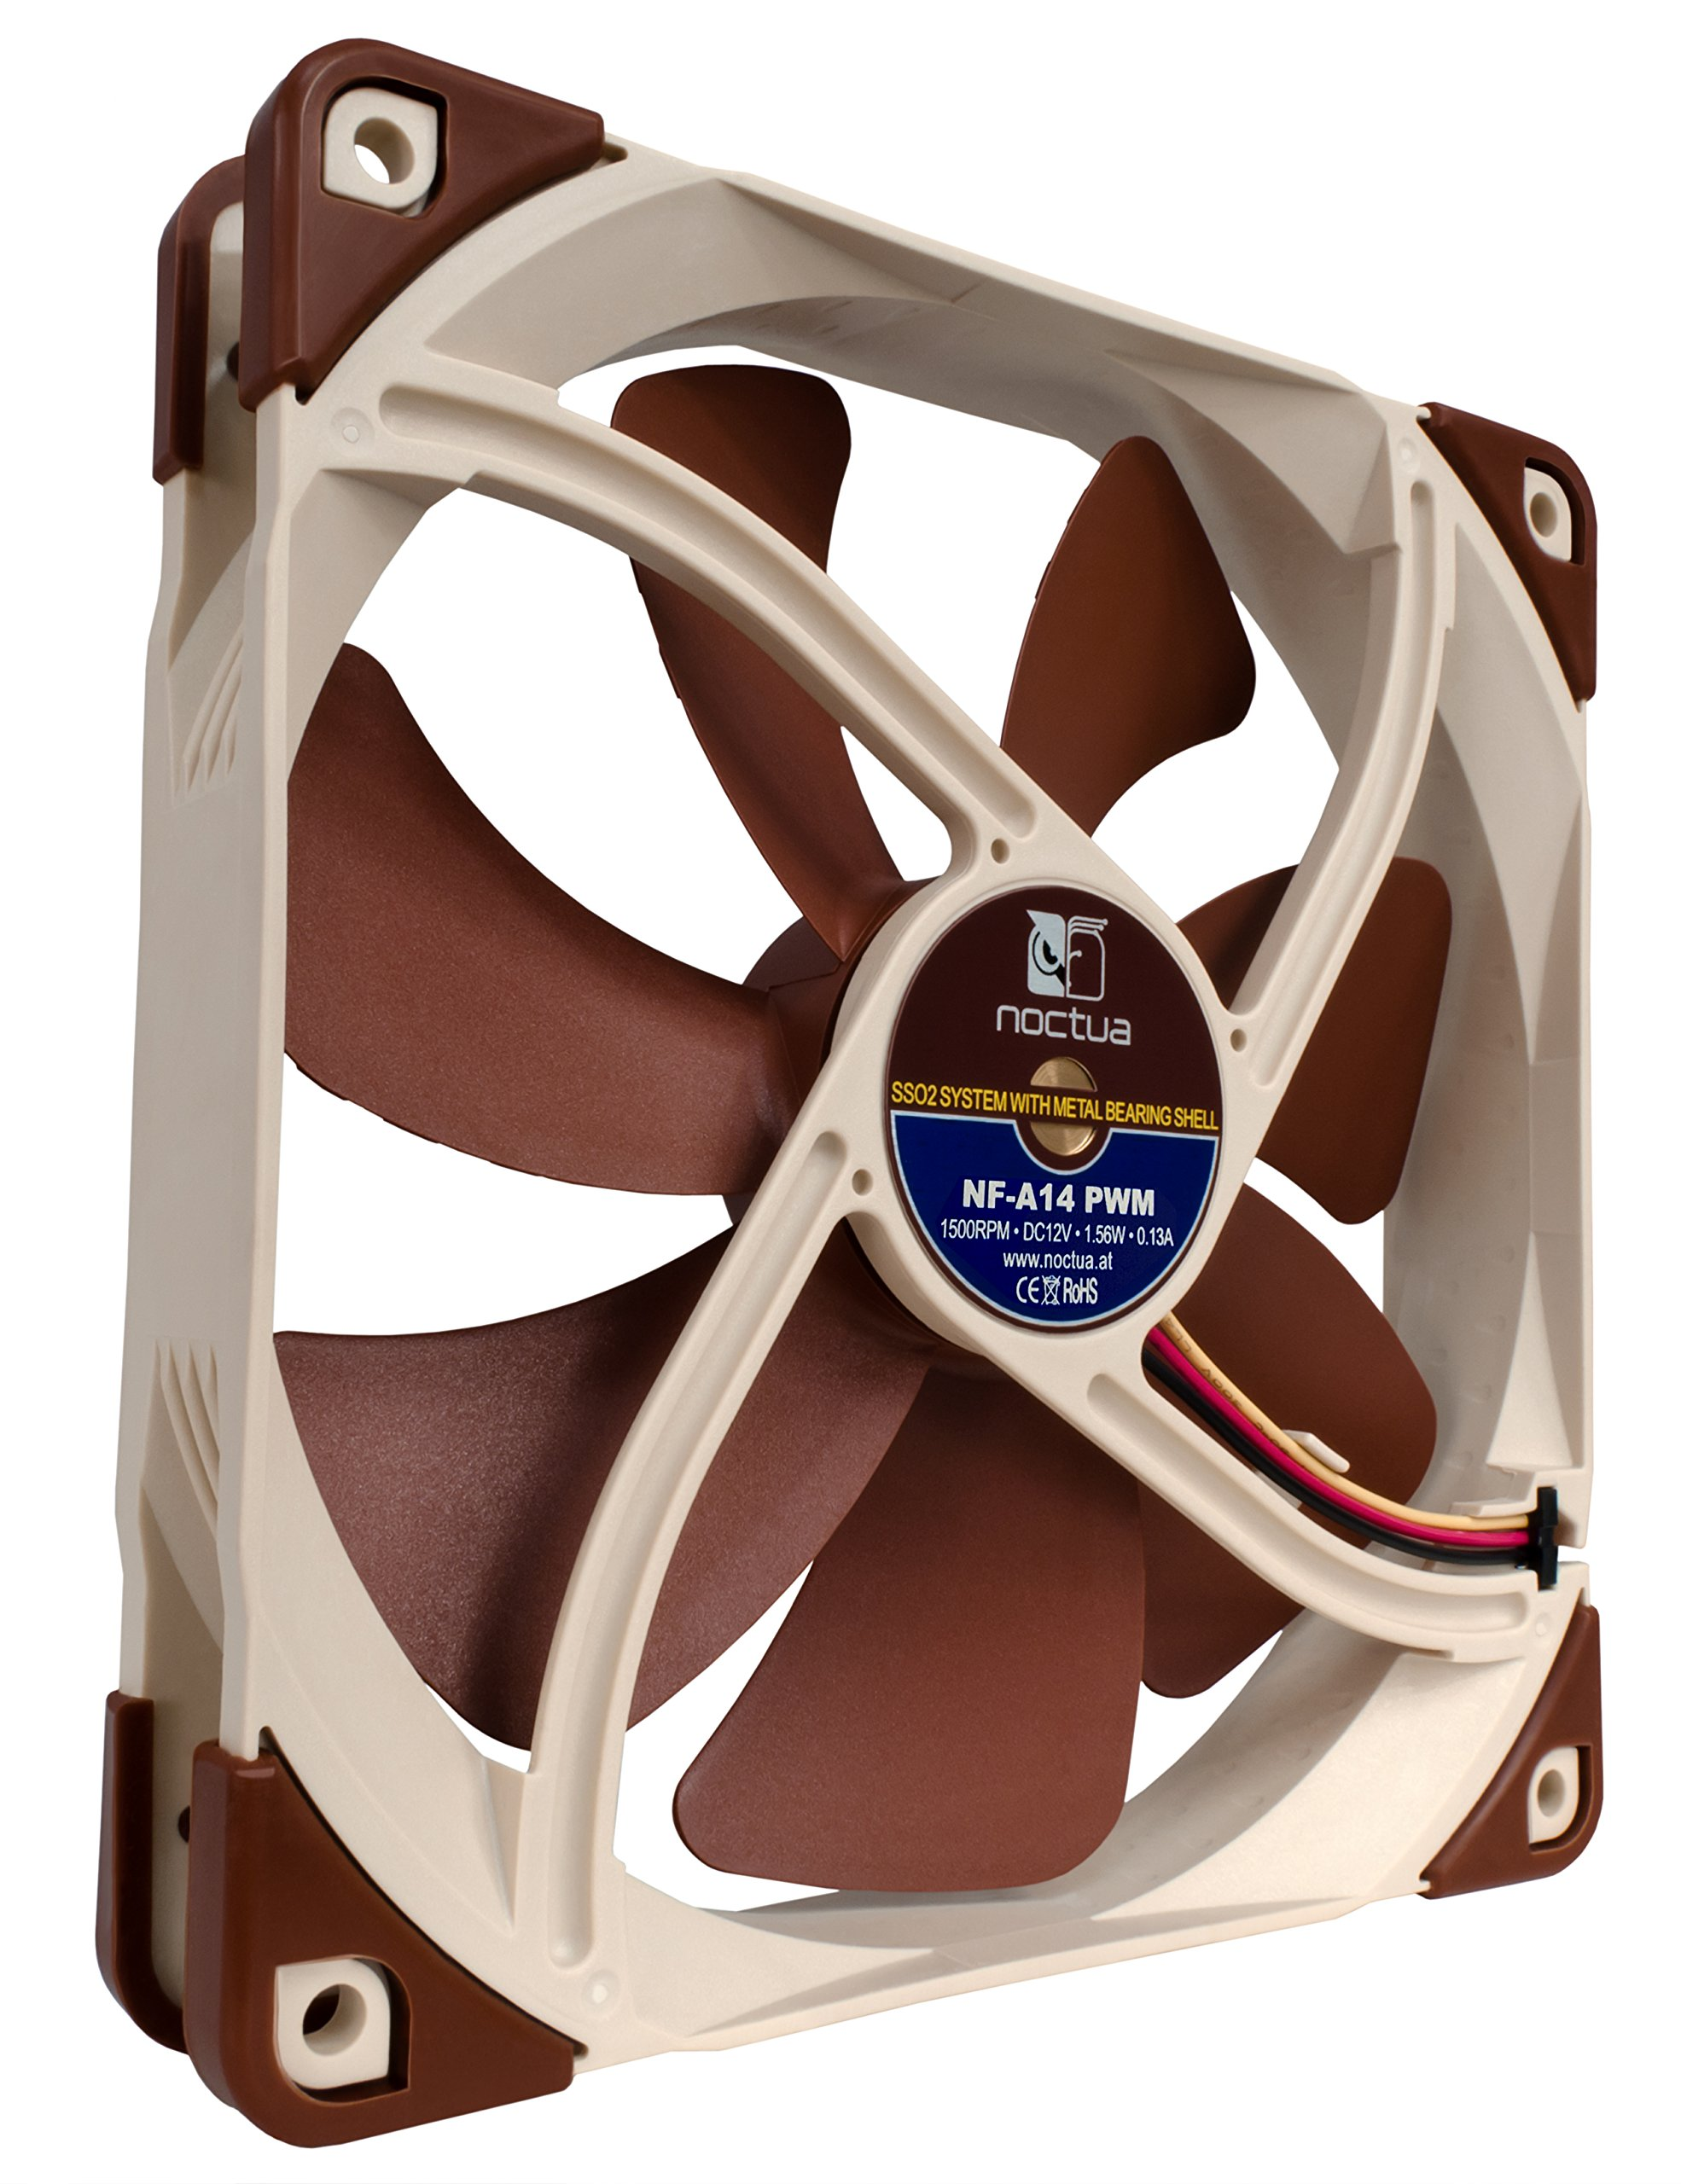 Noctua 140mm Premium Quiet Quality Fan with AAO Frame Technology (NF-A14 PWM) by noctua (Image #3)